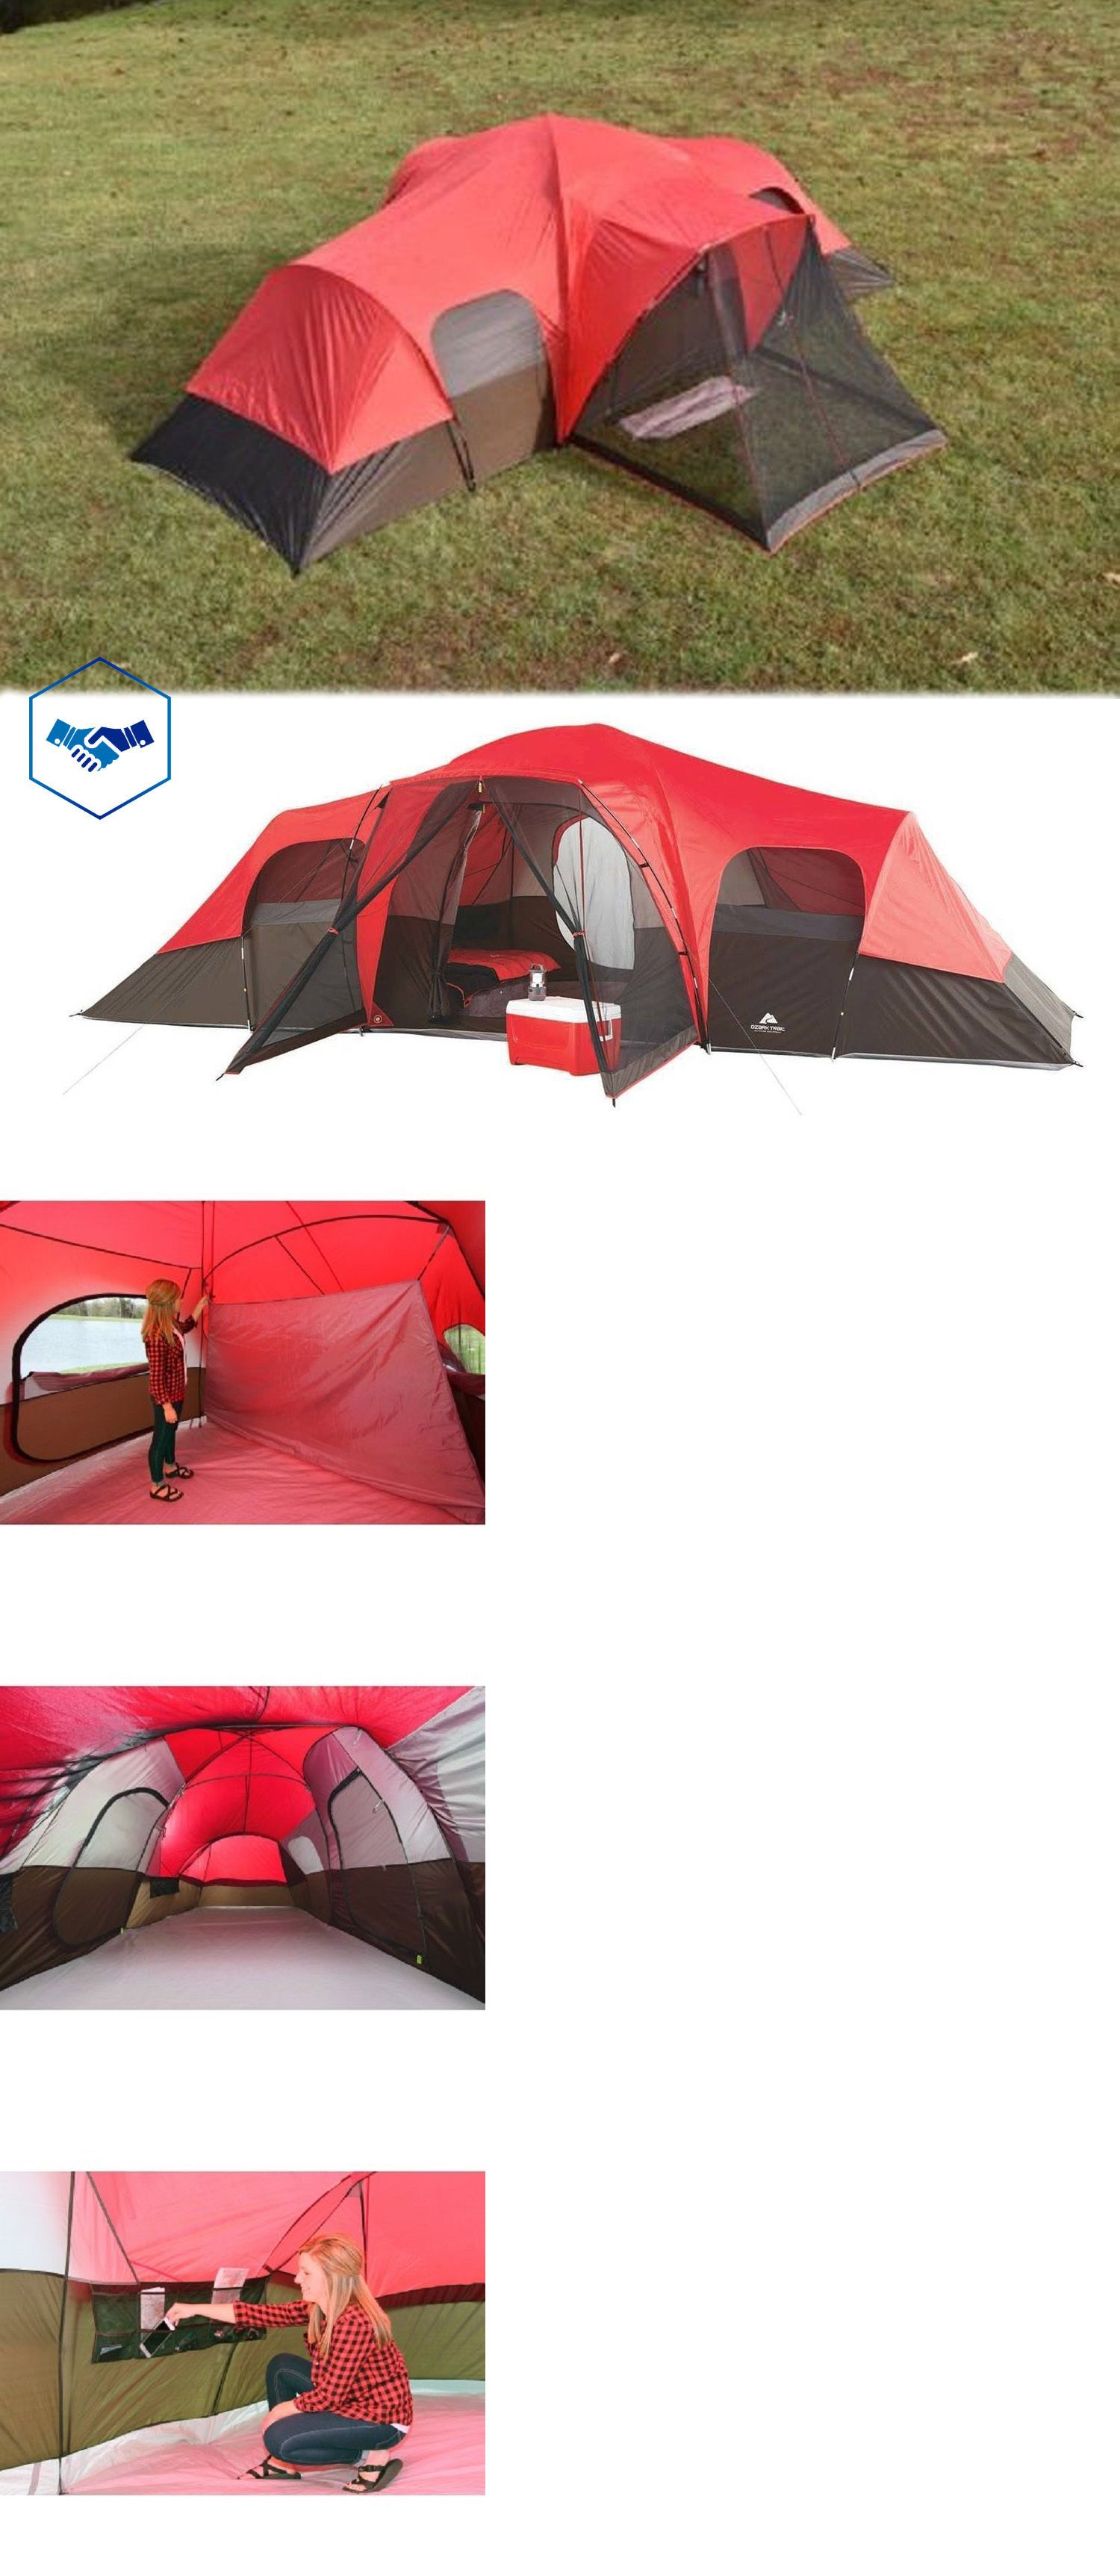 Tents 179010 Ozark Trail Family Tent 10 Person Outdoor C&ing Instant Cabin Shelter Hiking -  sc 1 st  Pinterest & Tents 179010: Ozark Trail Family Tent 10 Person Outdoor Camping ...